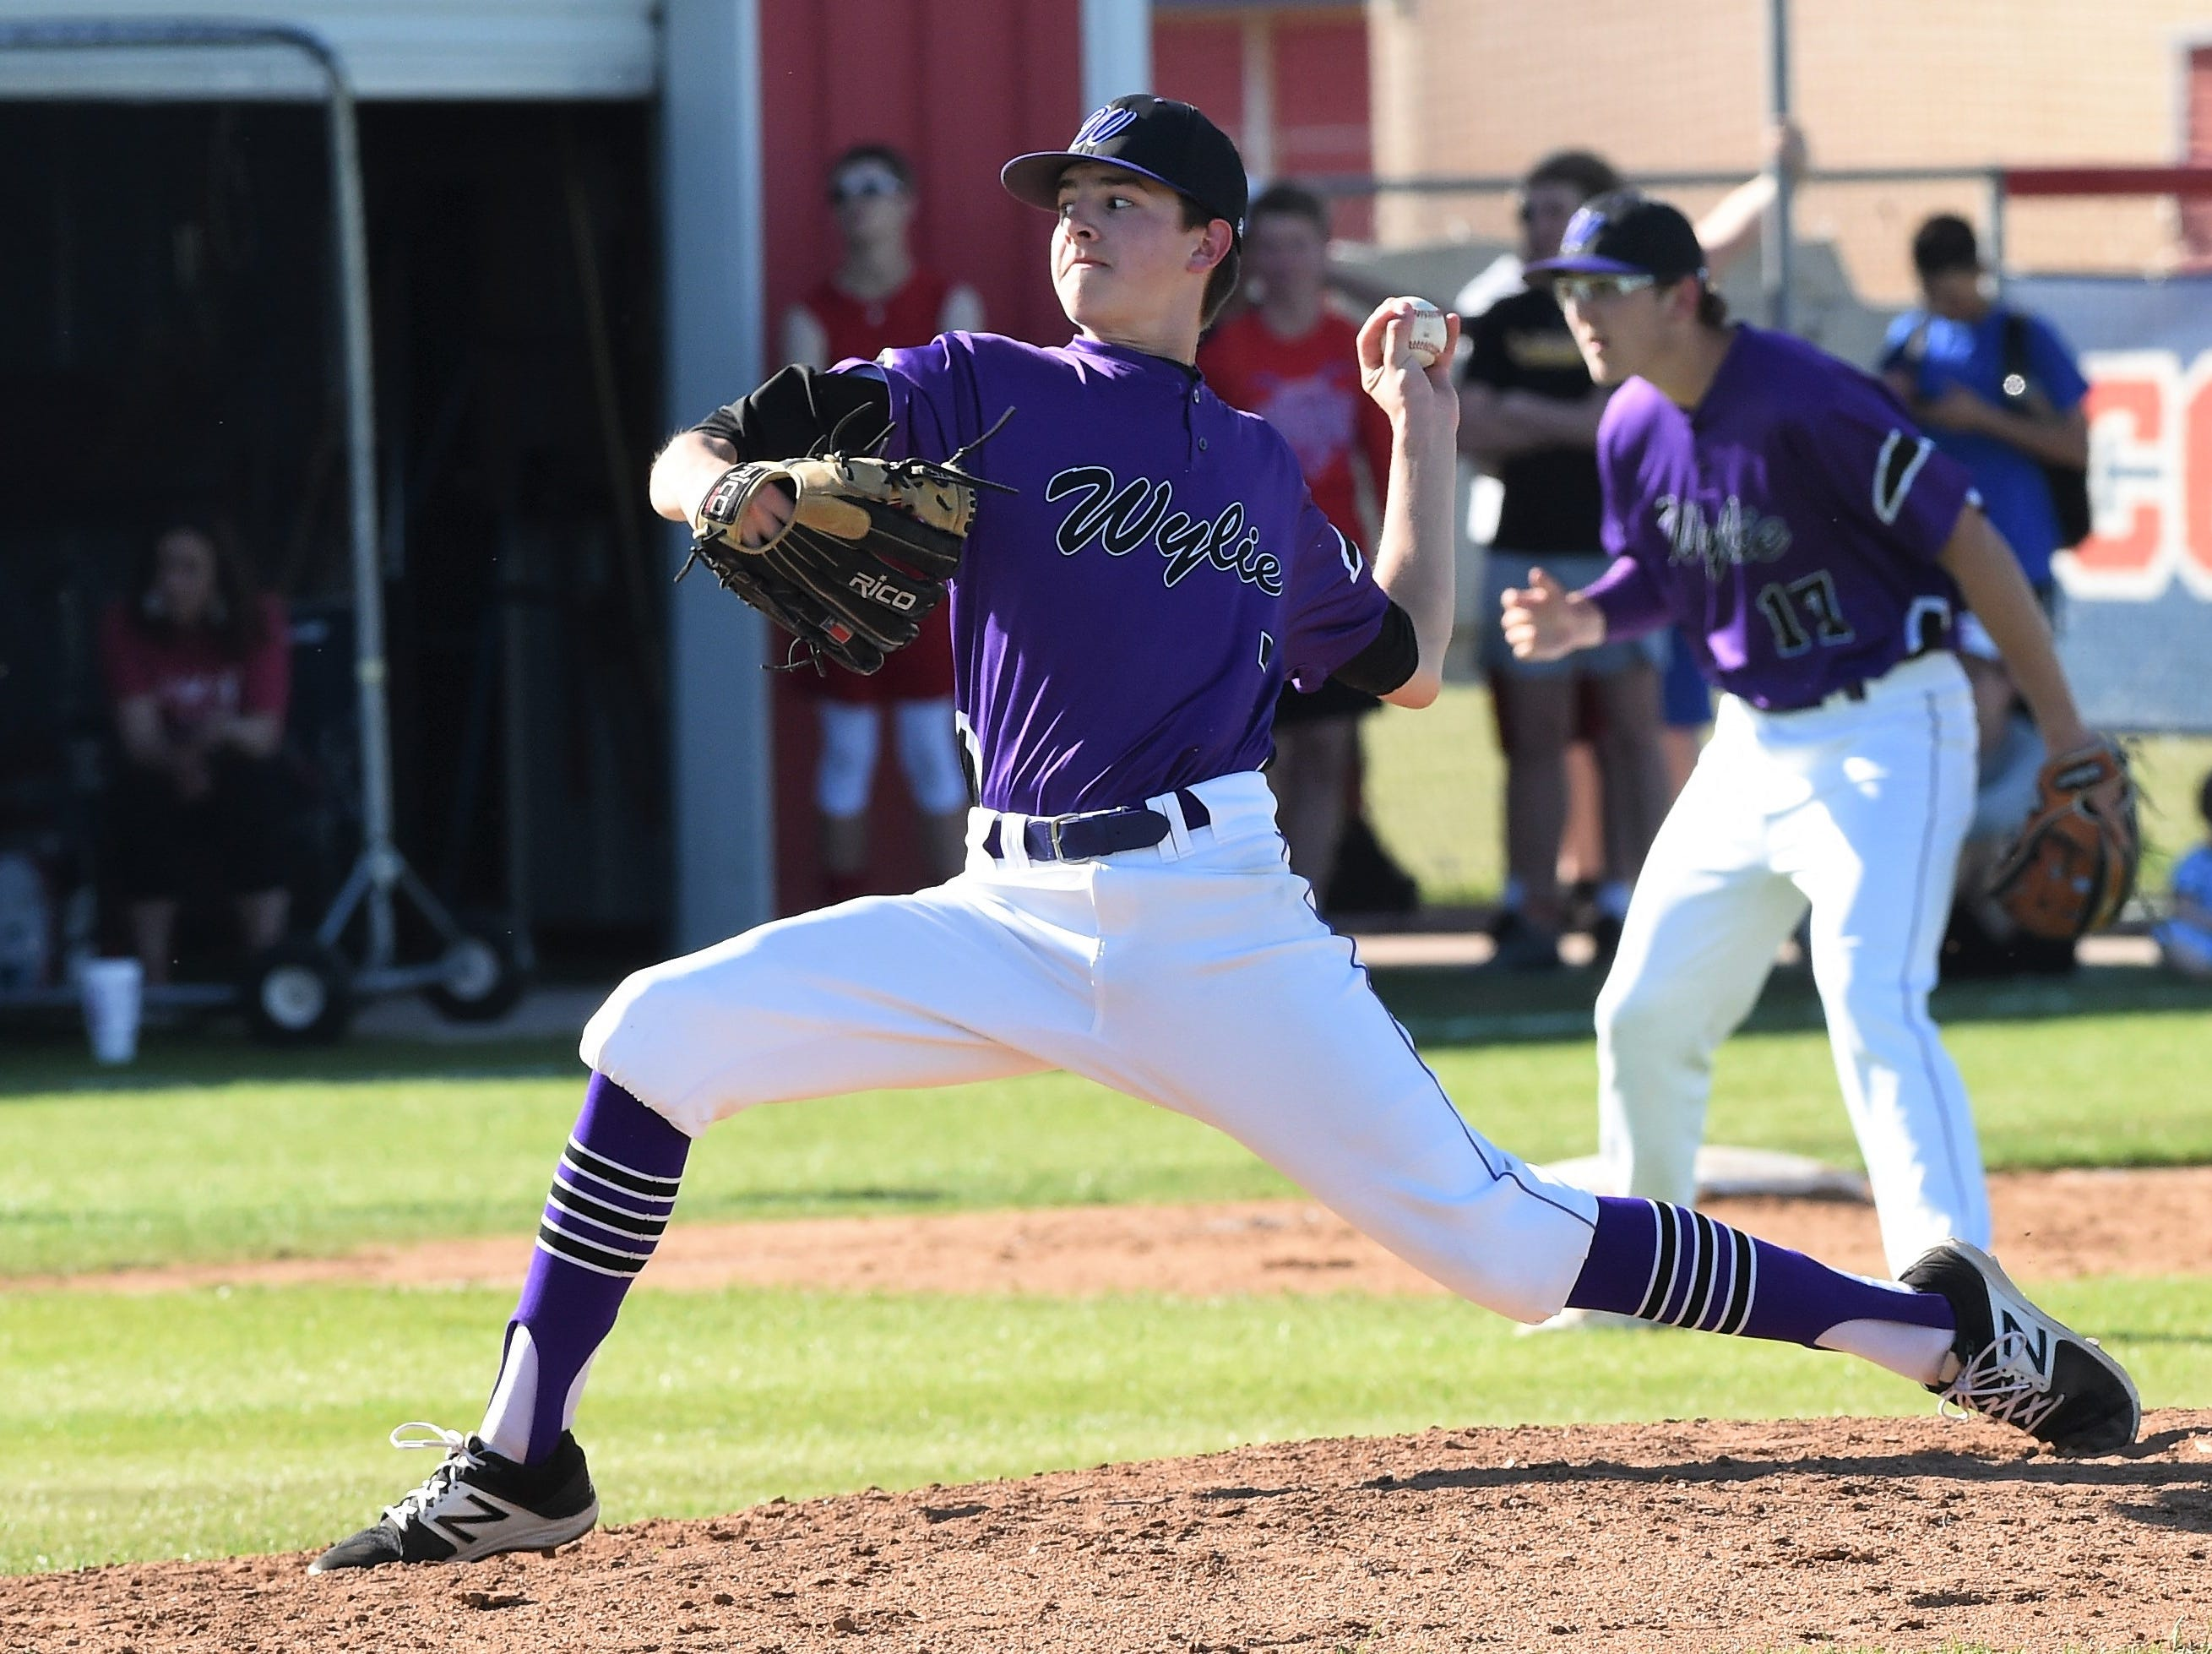 Wylie pitcher Dash Albus (7) delivers to the plate against Cooper at Cougar Field on Tuesday, April 9, 2019. Albus gave up one earned run on two hits with three strikeouts in over three innings of work as the Bulldogs won 11-5.